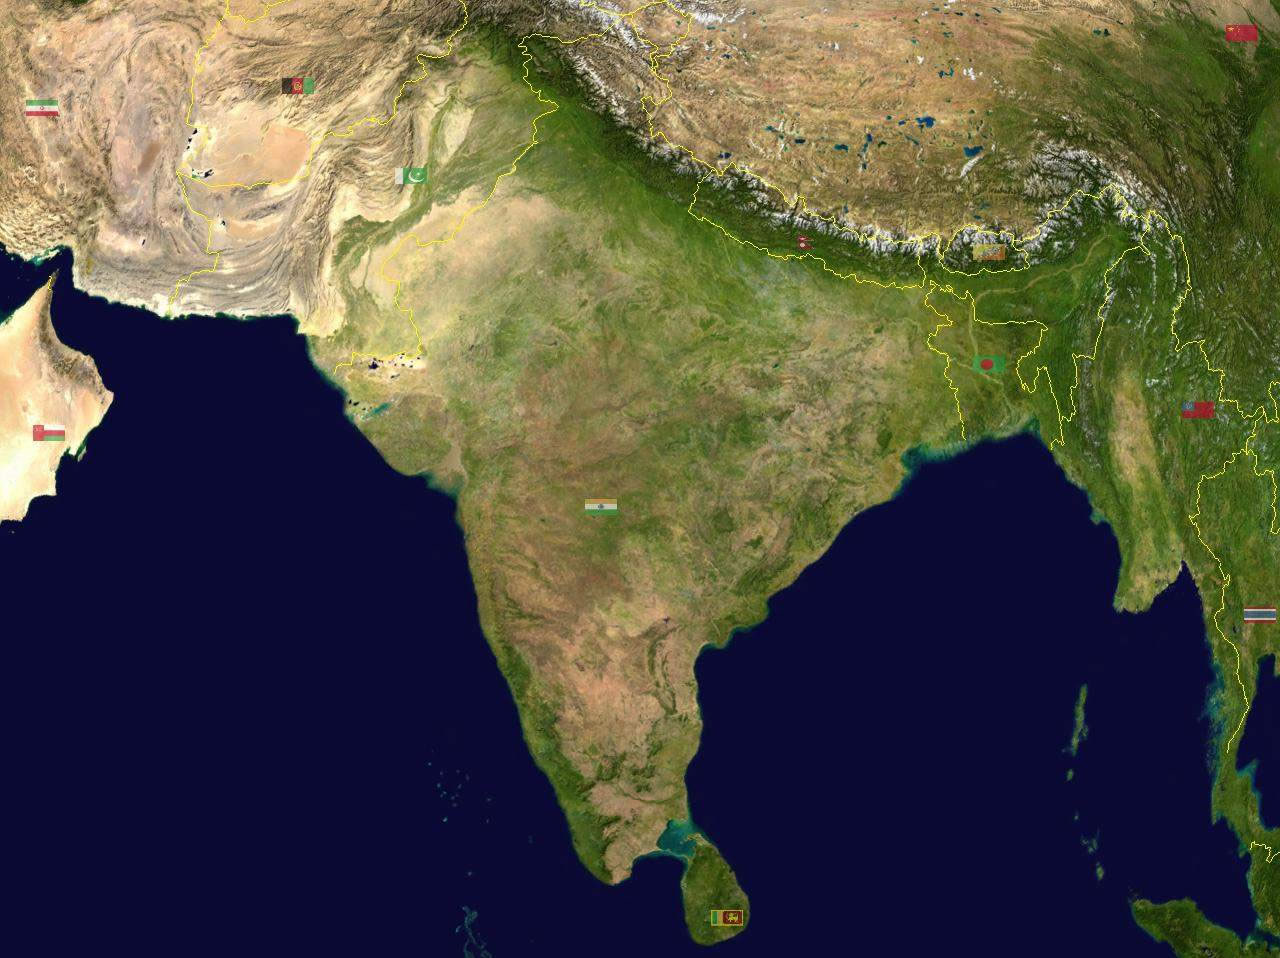 South asia india satellite map maps of india south asia india satellite map gumiabroncs Choice Image